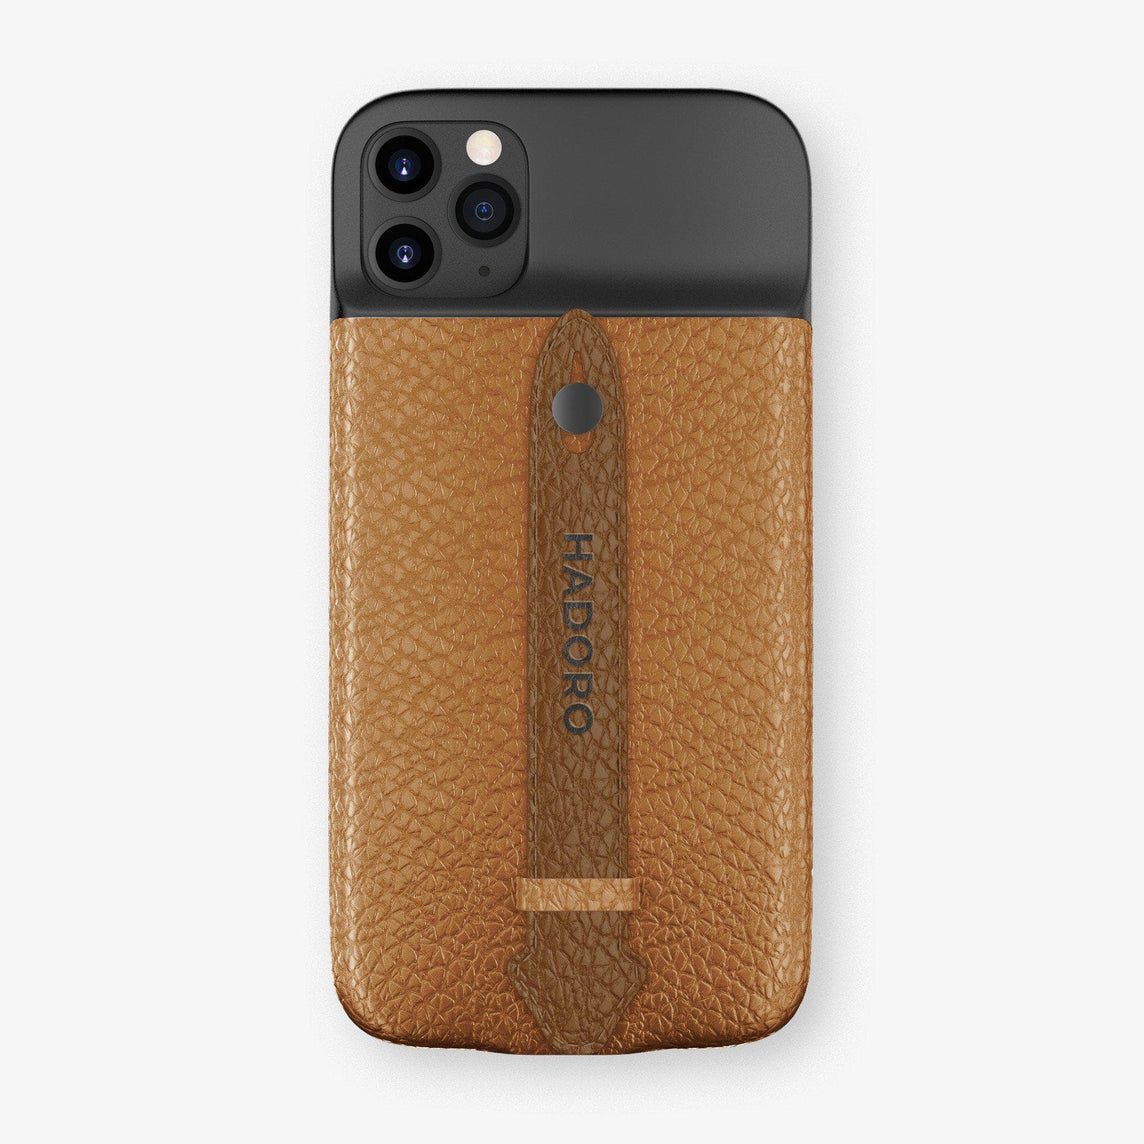 Calfskin Battery Finger Case for iPhone 11 Pro Max | Cognac/Brown - Black without-personalization